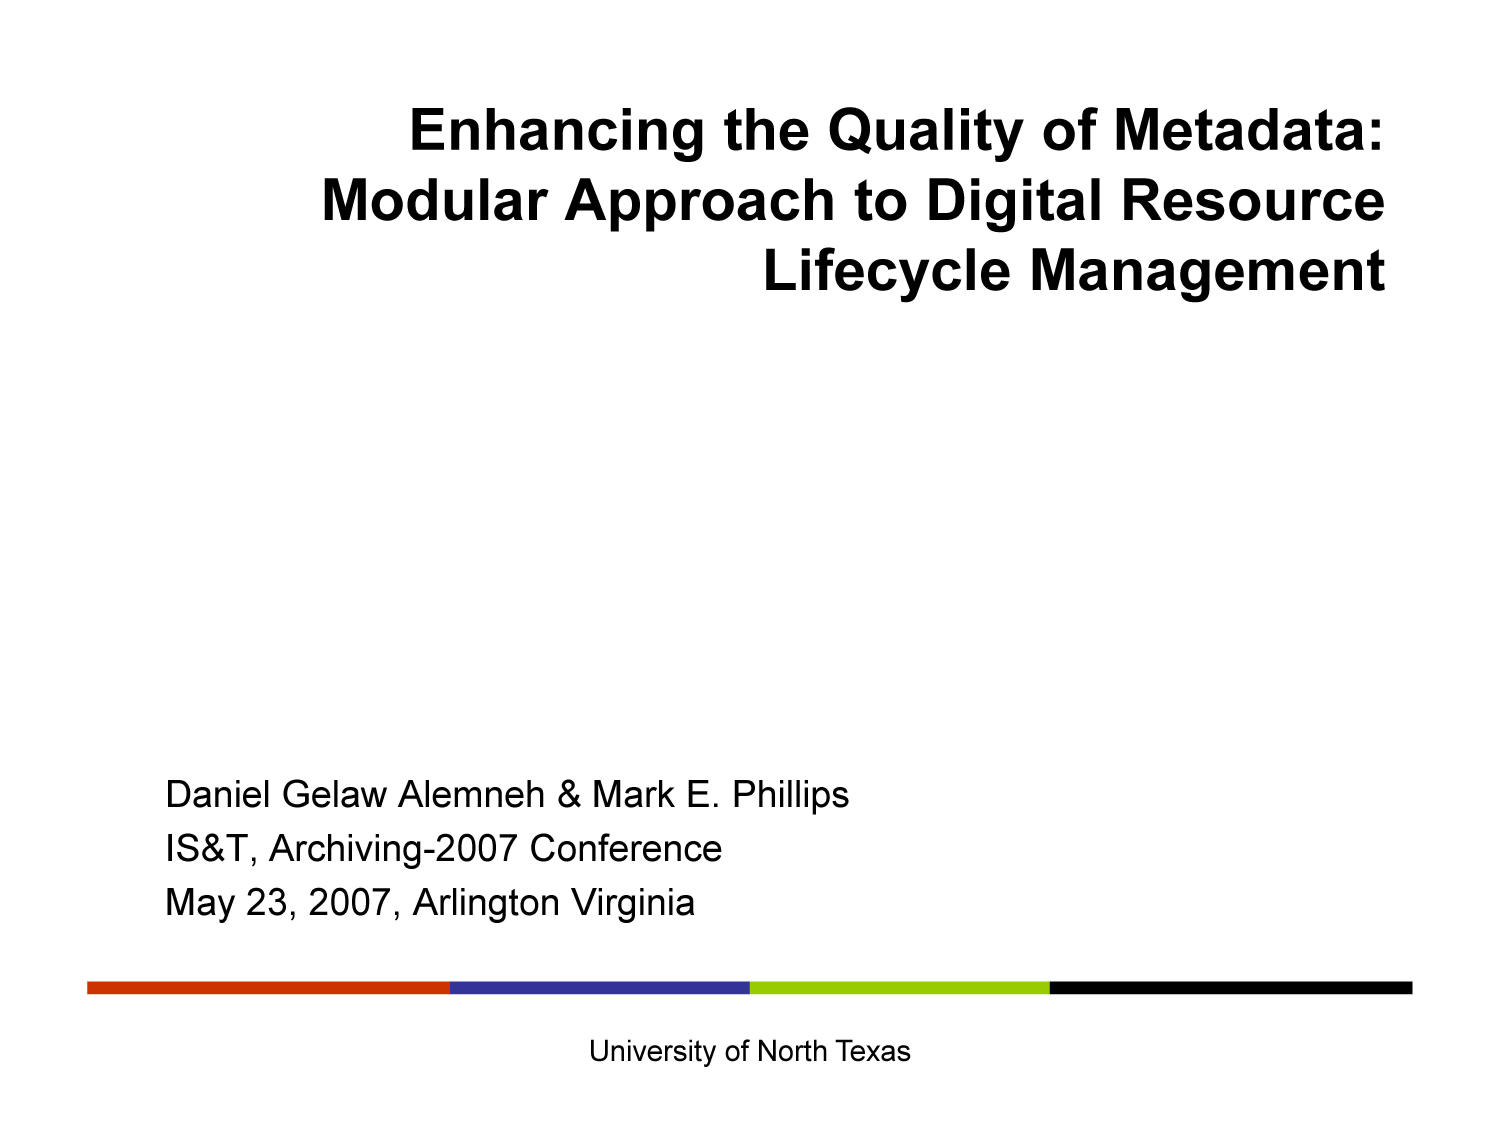 Enhancing the Quality of Metadata: Modular Approach to Digital Resource Lifecycle Management                                                                                                      [Sequence #]: 1 of 42